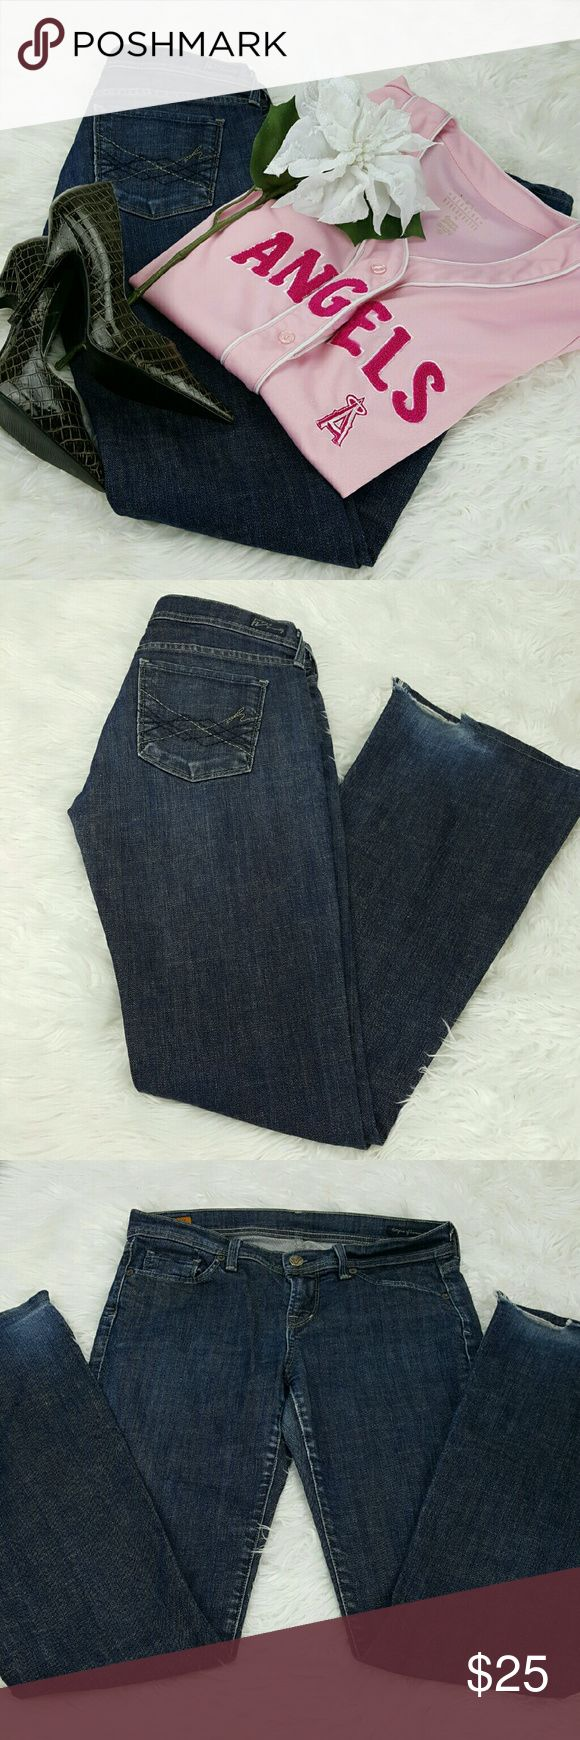 """💞SALE💞 Citizens of Humanity Anniversary Premium Awesome Citizens of Humanity Anniversary Premium 33"""" Inseam 8"""" Rise 16"""" across the front laying flat 98% Cotton 2% Elastin some wear on cuff see photo plenty of hemming room if 33"""" Inseam isn't needed price reflects Citizens of Humanity Jeans"""